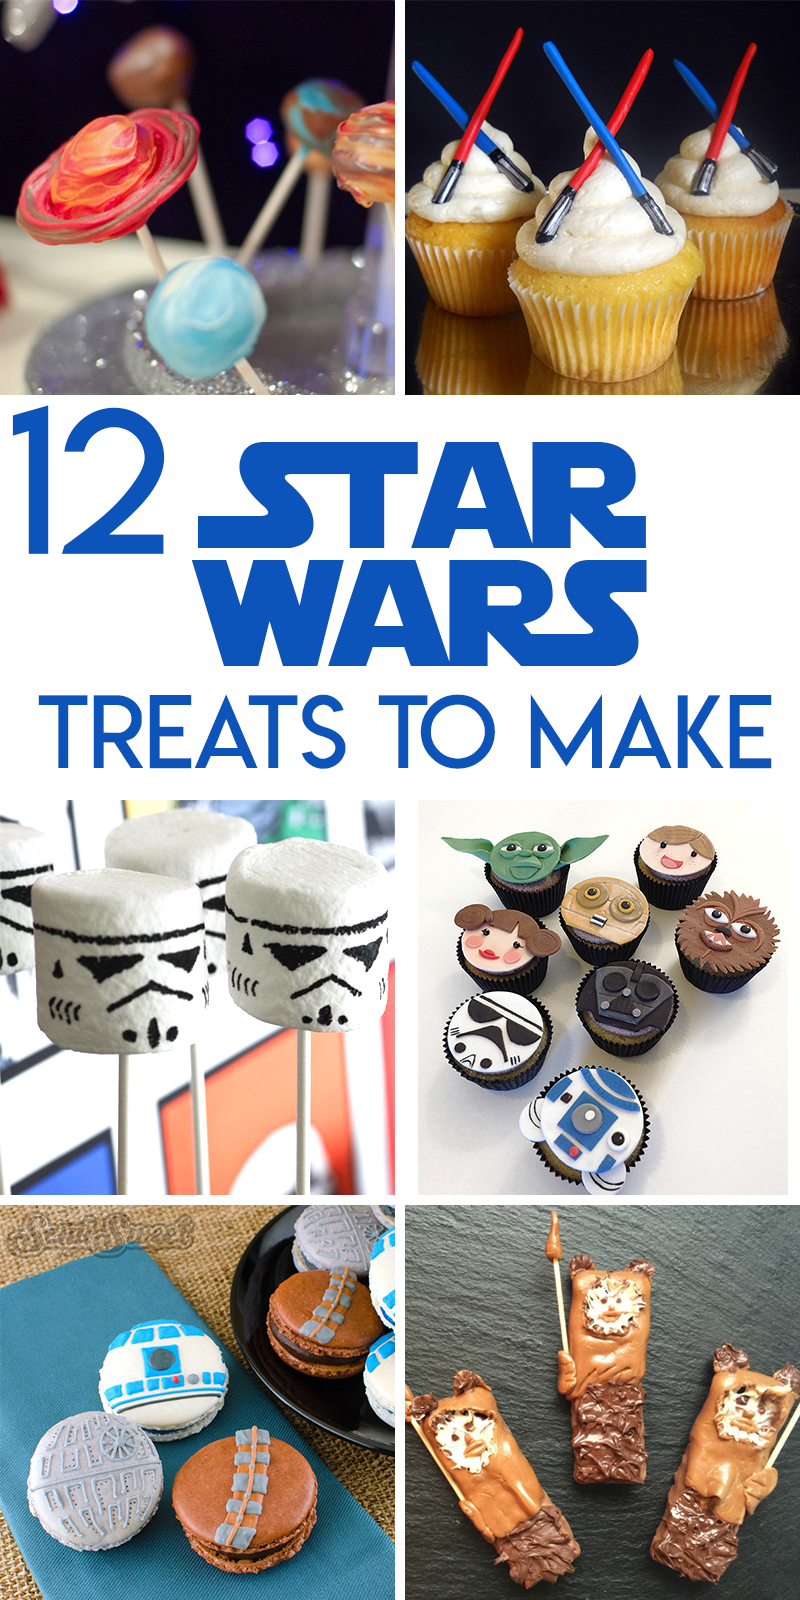 12 star wars snacks and treats to make for the opening of The Last Jedi